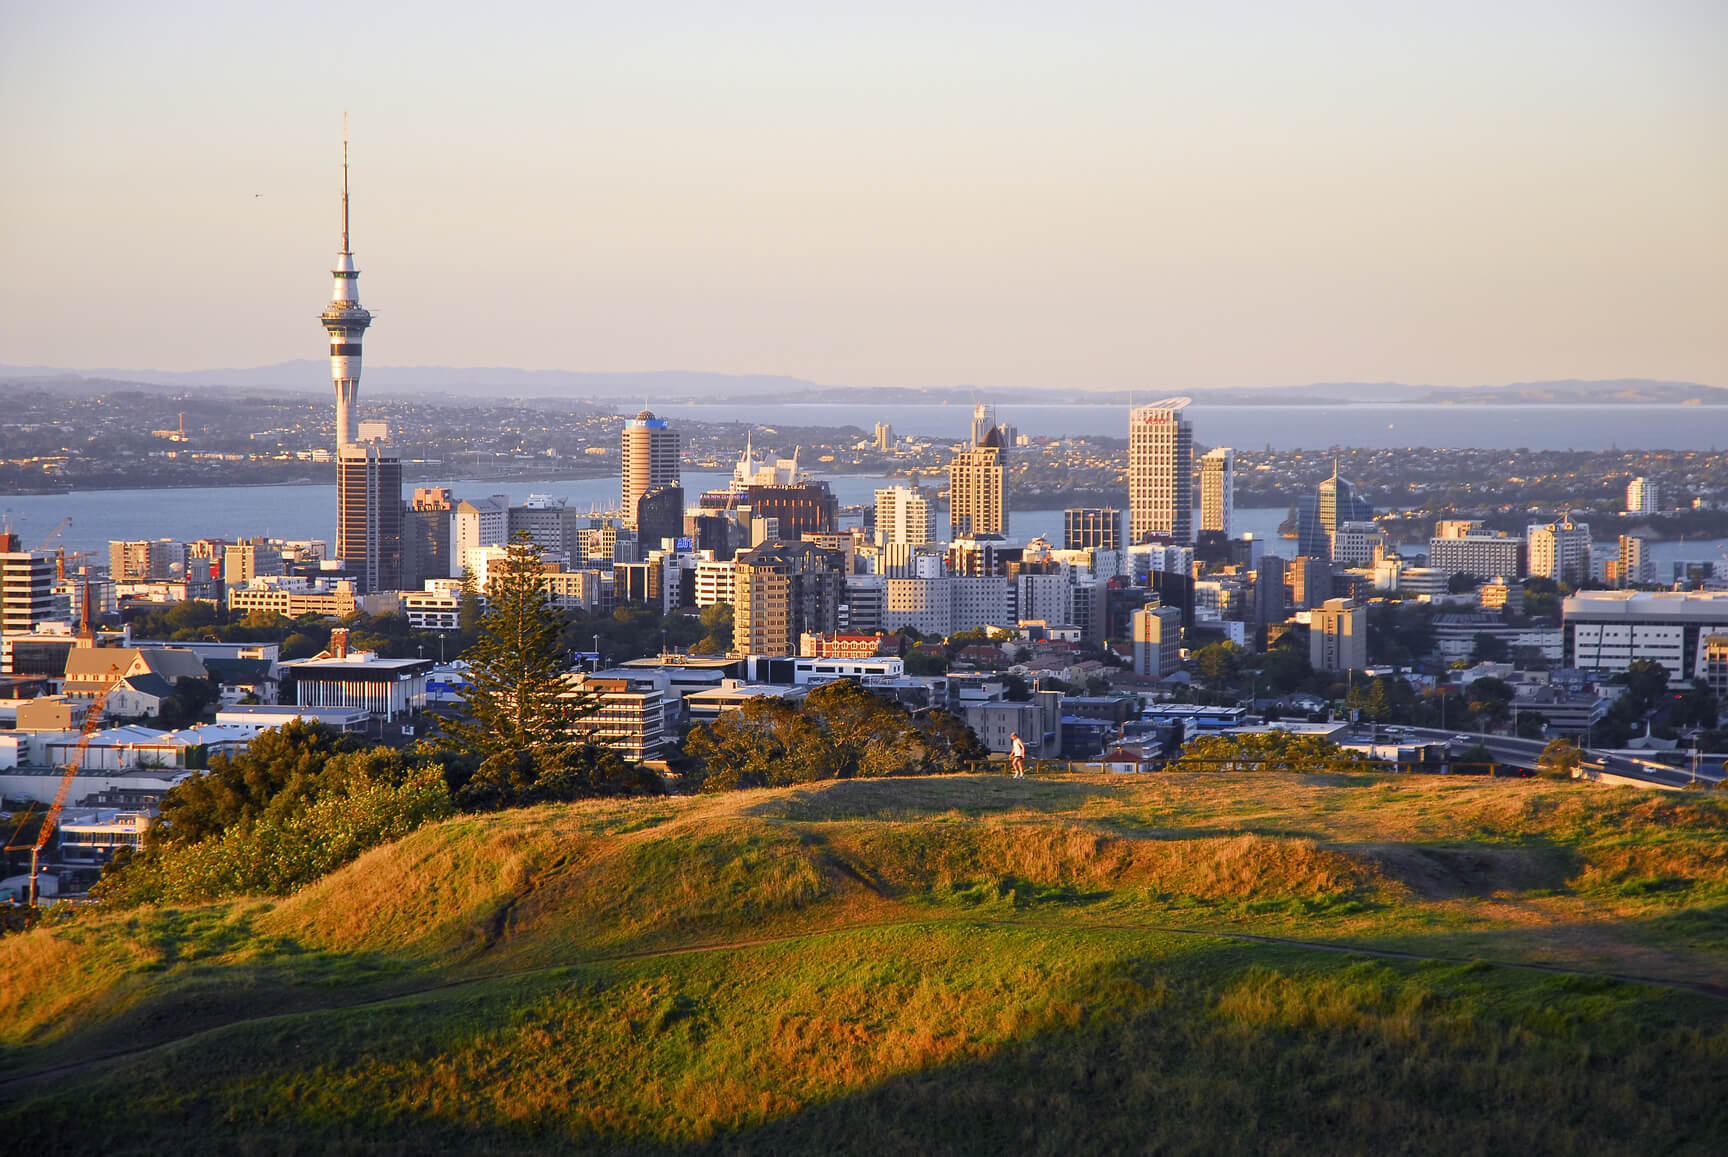 Phoenix, Arizona to Auckland, New Zealand for only $676 roundtrip